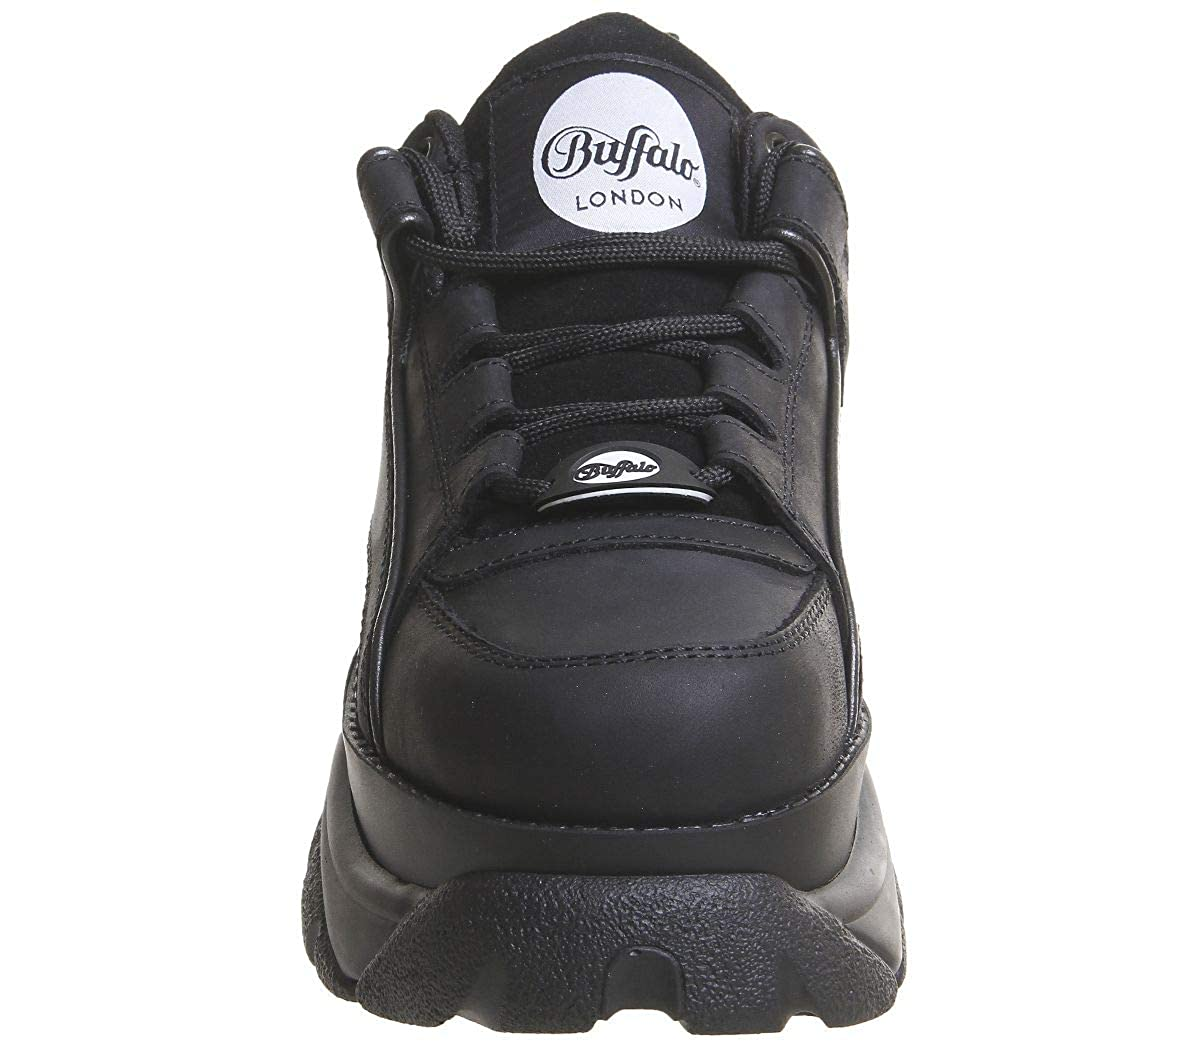 04b78a19d8d Buffalo 1339-14 2.0 Shoes Black: Amazon.co.uk: Shoes & Bags